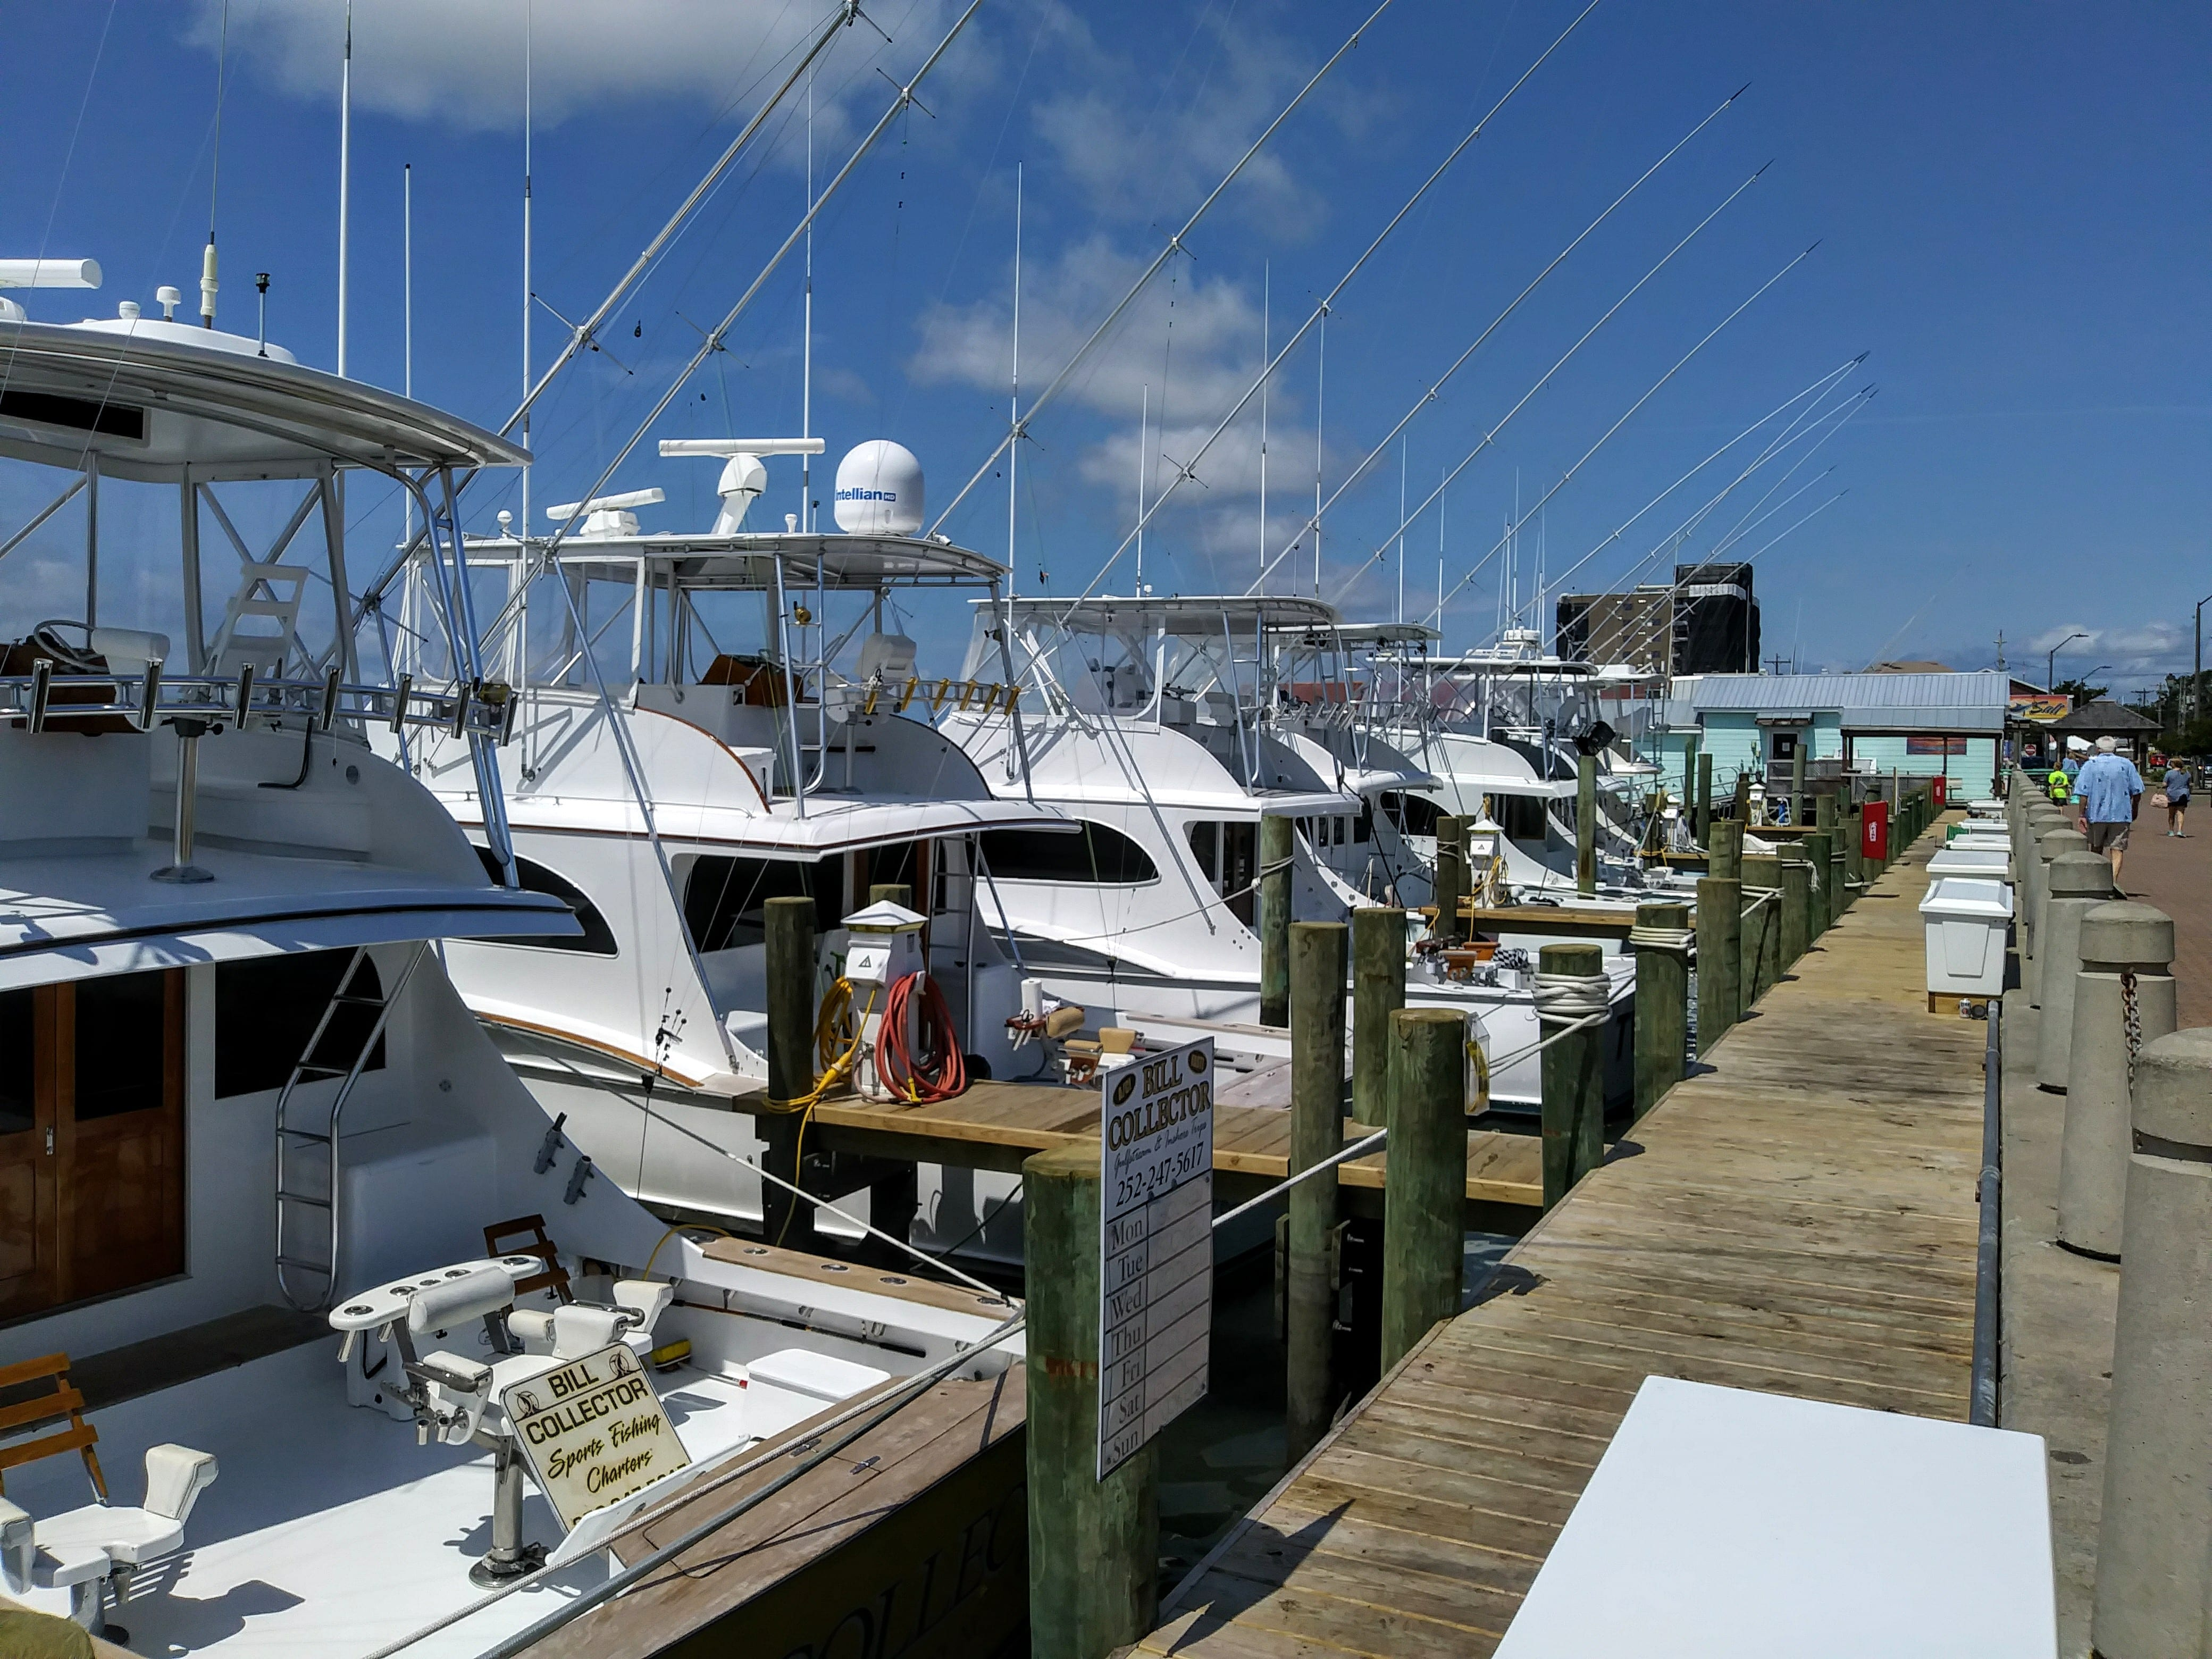 Charter boats ready for fishing